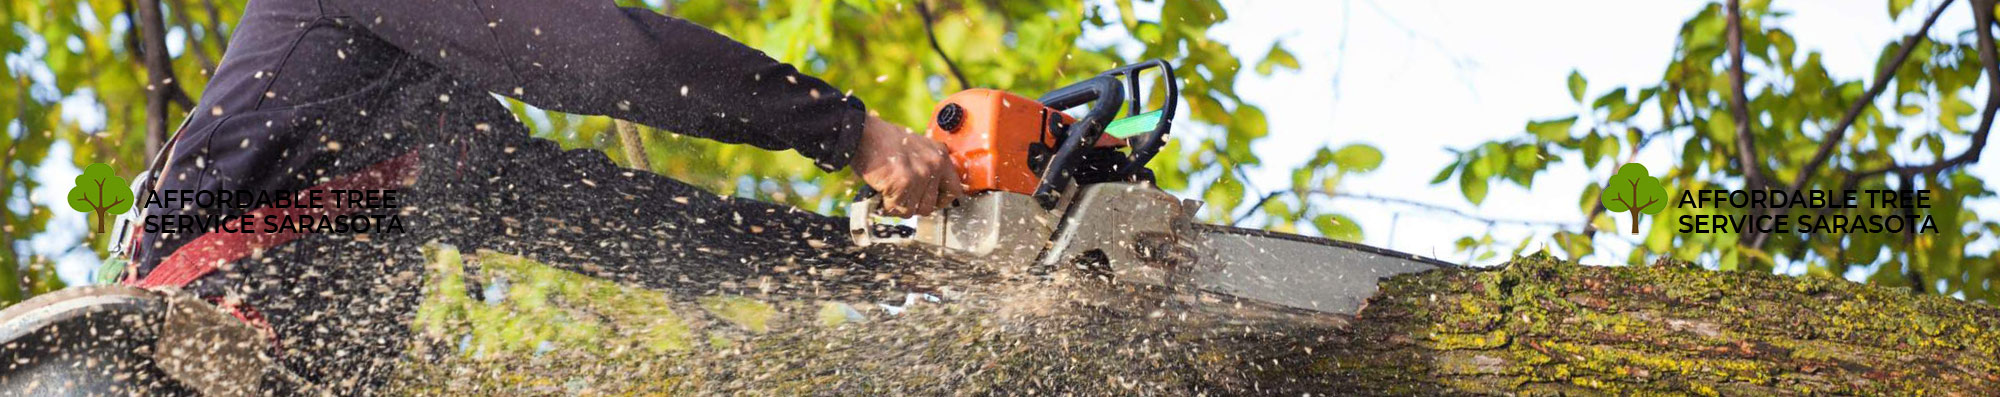 What Tree Removing Tips Should You Follow